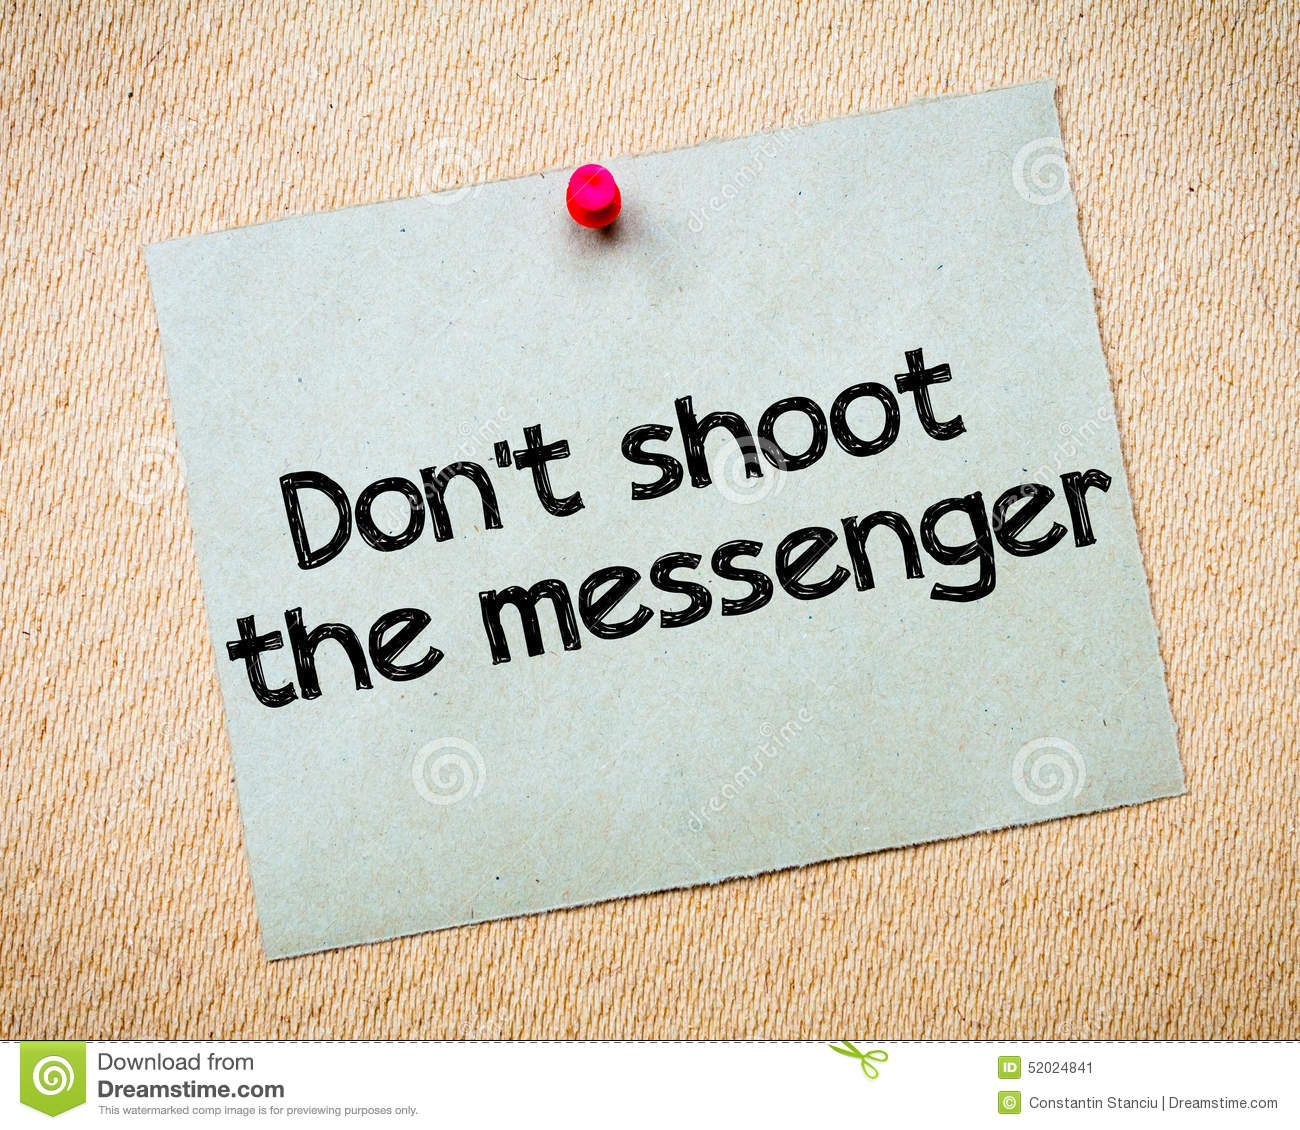 Don't shoot the messenger license, download or print for £6. 20.